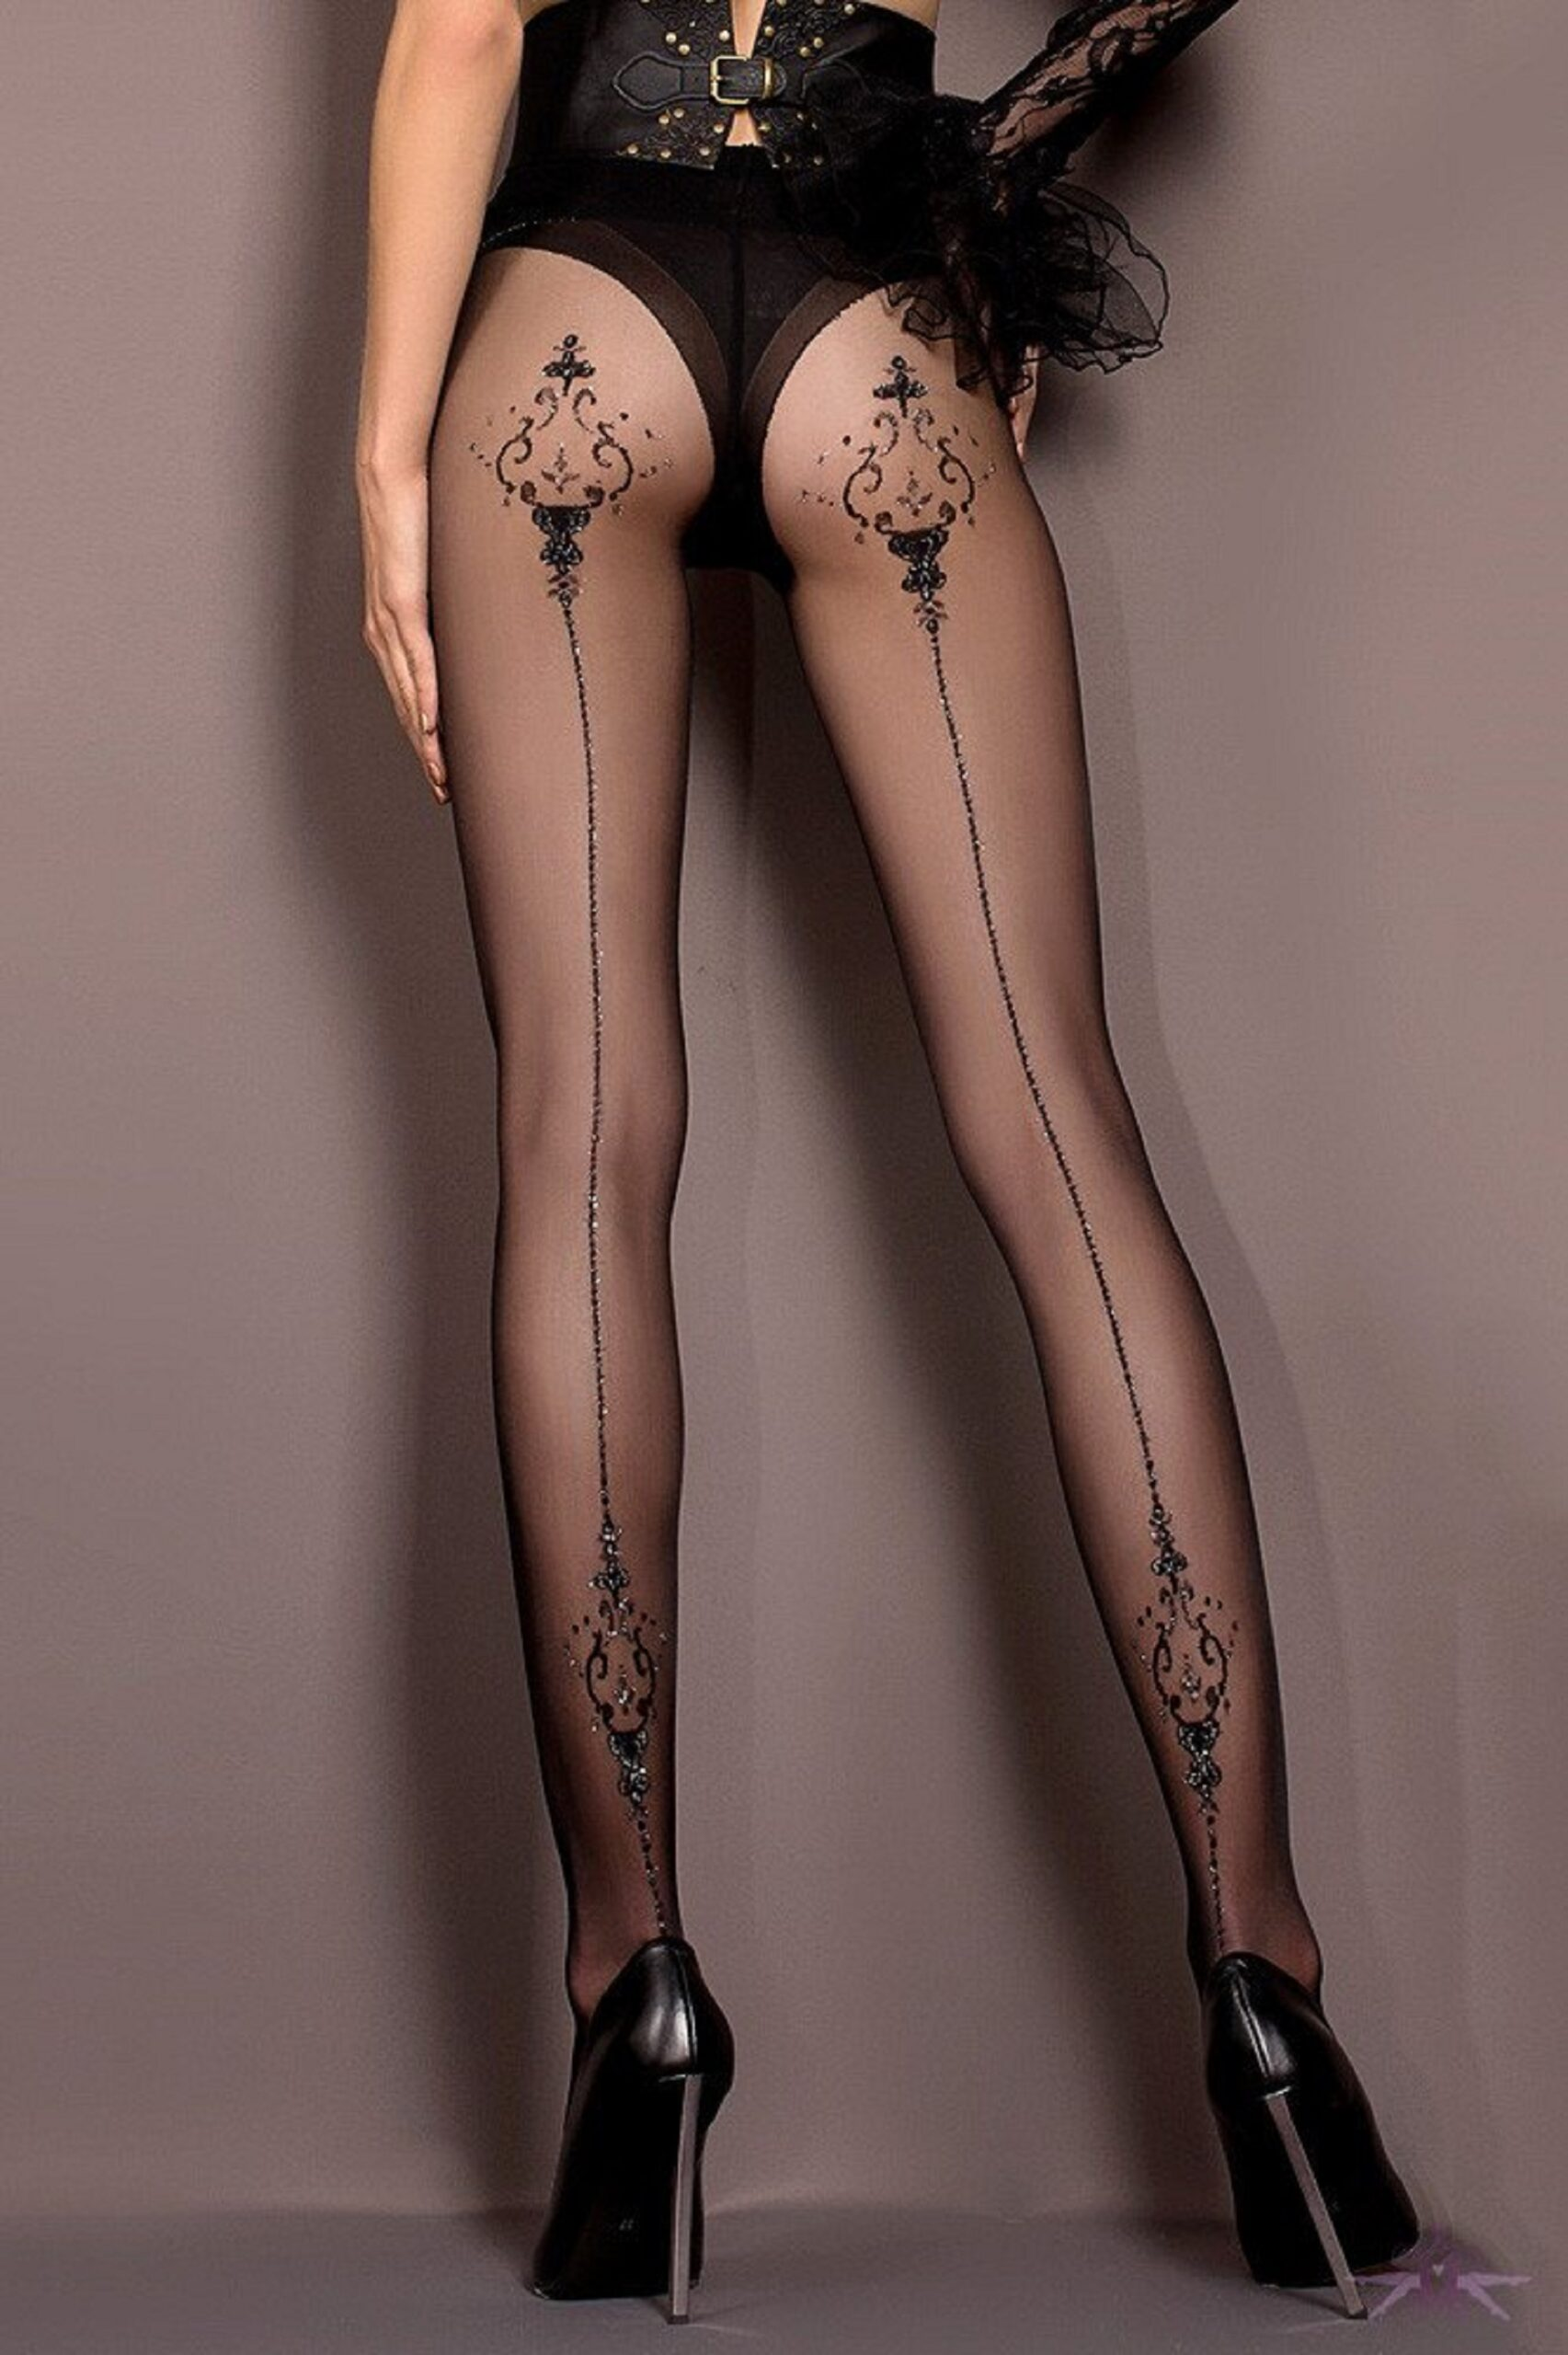 Ballerina hosiery at Mayfair Stockings www.mayfairstockings.com